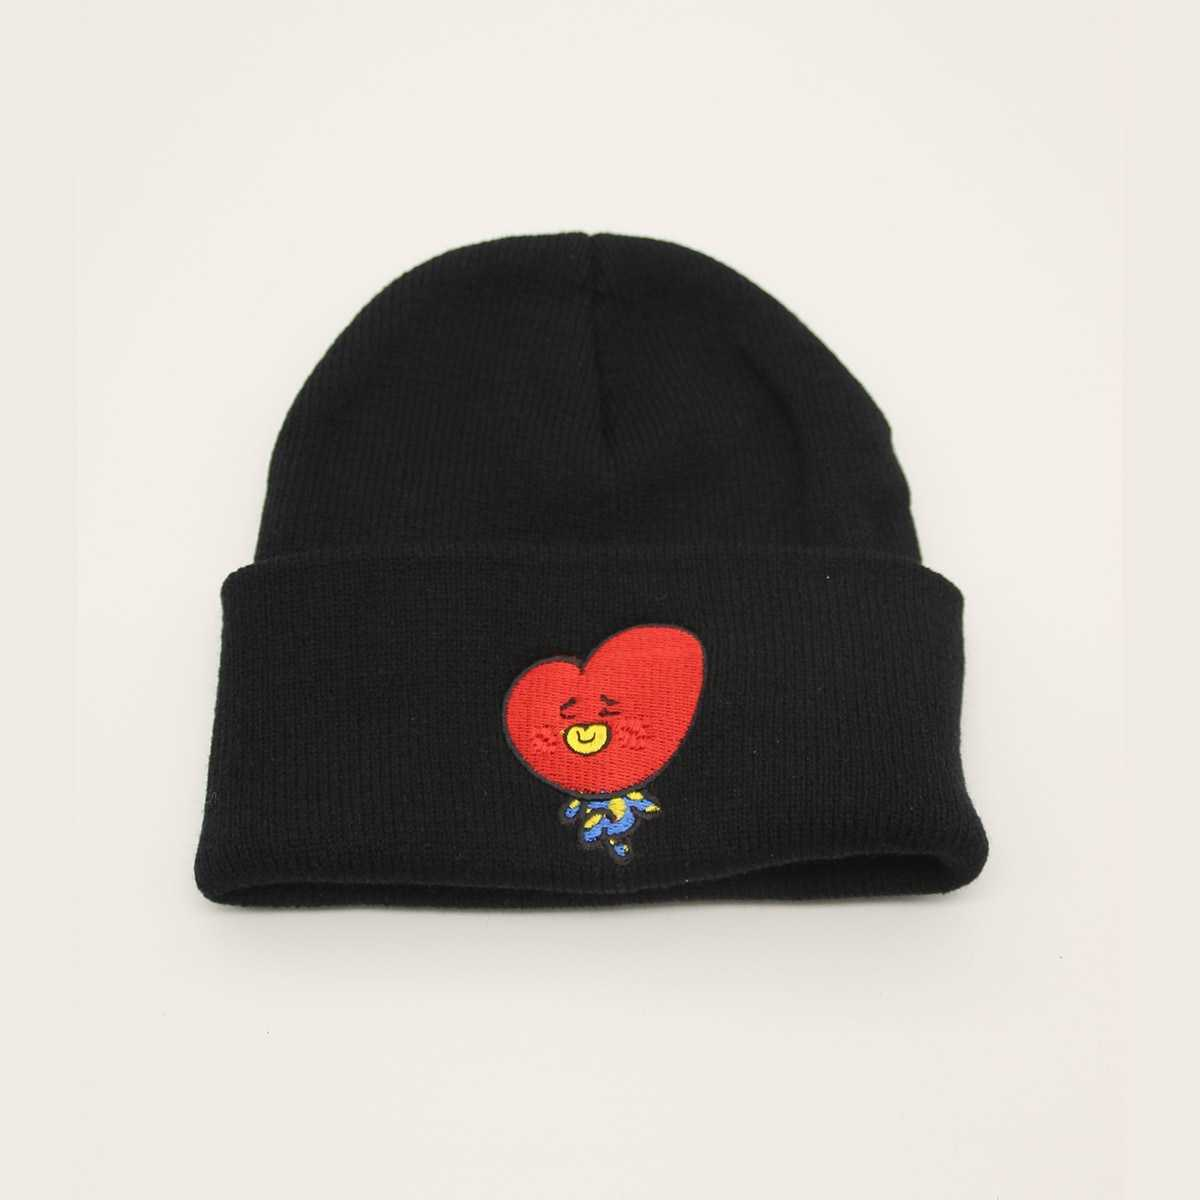 Cartoon Embroidery Cuffed Knit Beanie in Black by ROMWE on GOOFASH